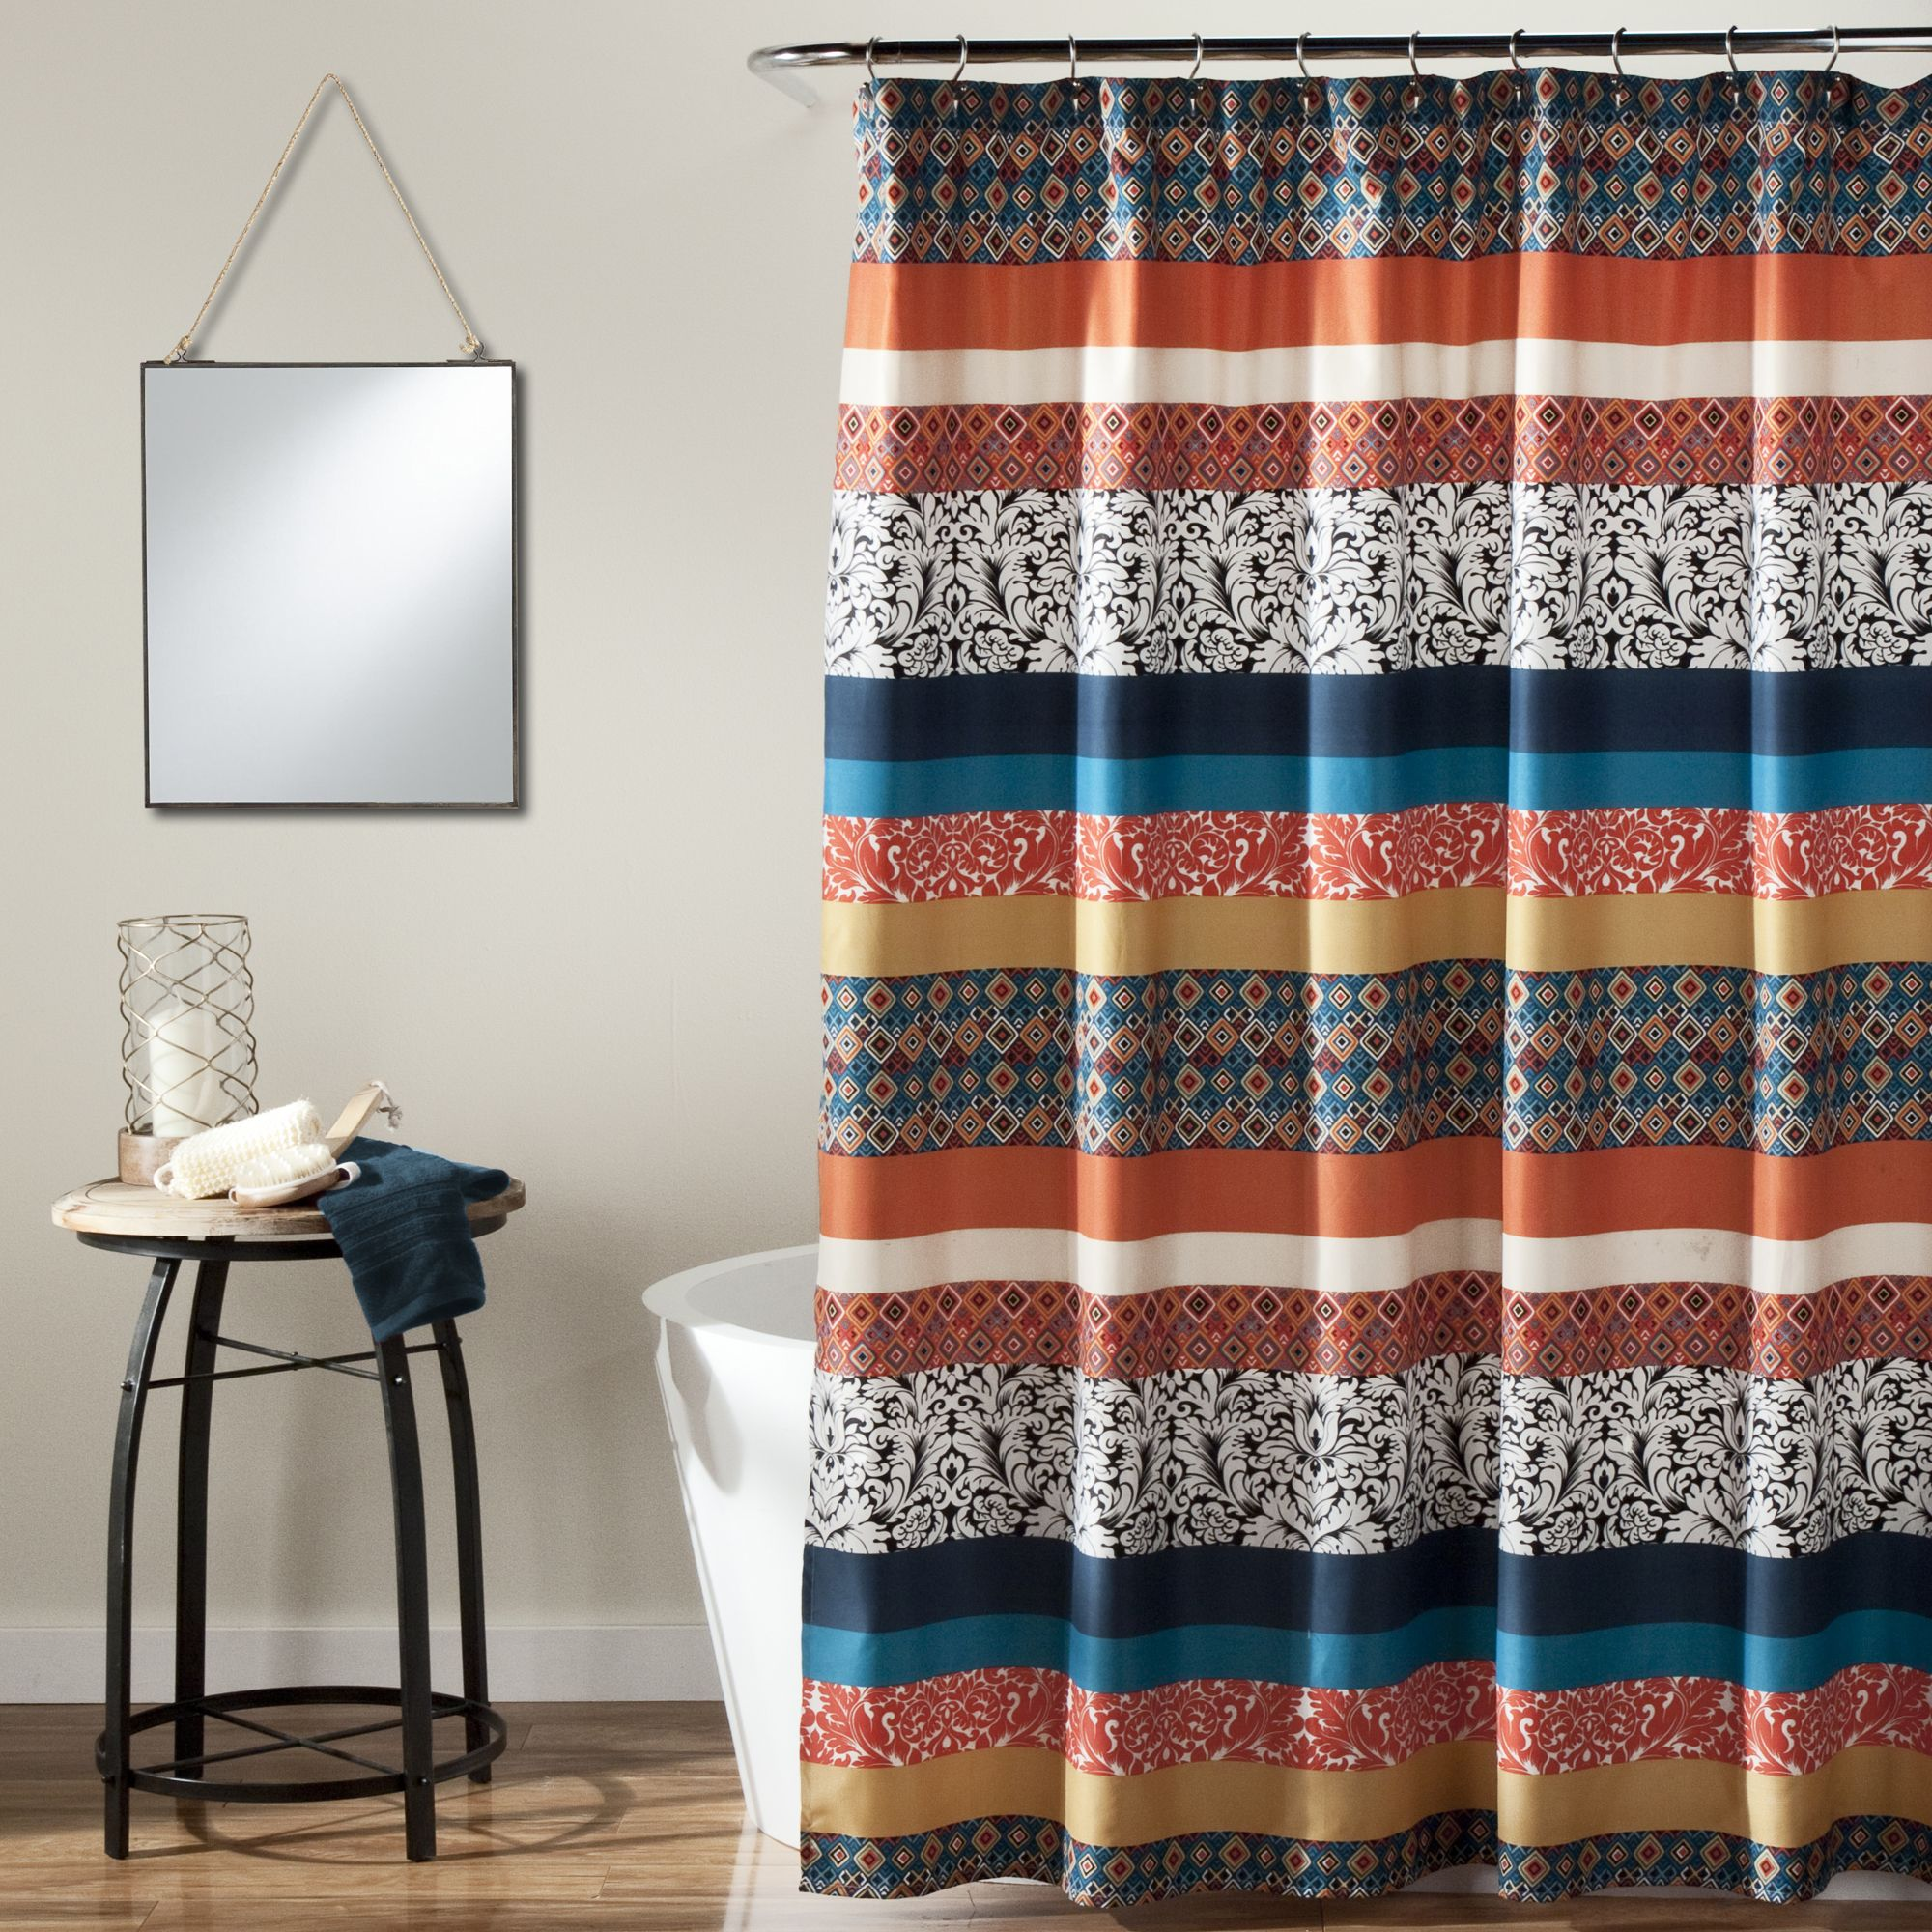 sack southwest shower il curtains striped french fullxfull grain curtain farmhouse modern listing zoom